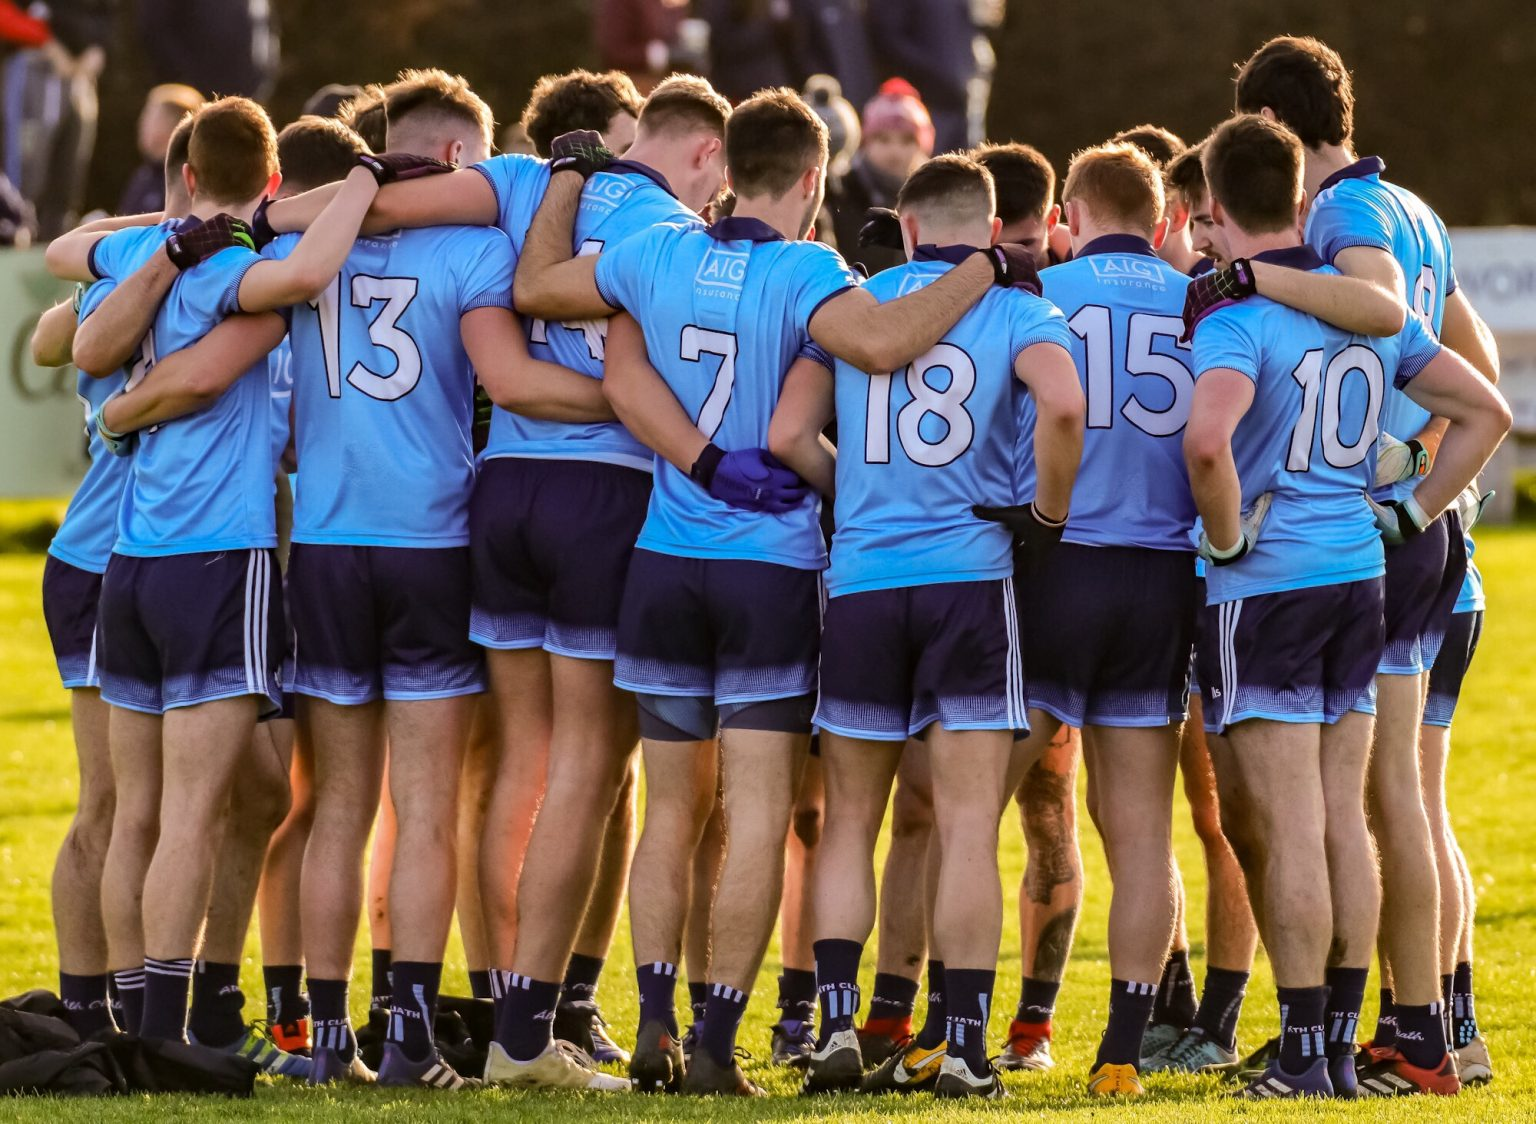 The dublin Senior Football Team in sky blue jerseys and navy shorts in a huddle before penalty shootout